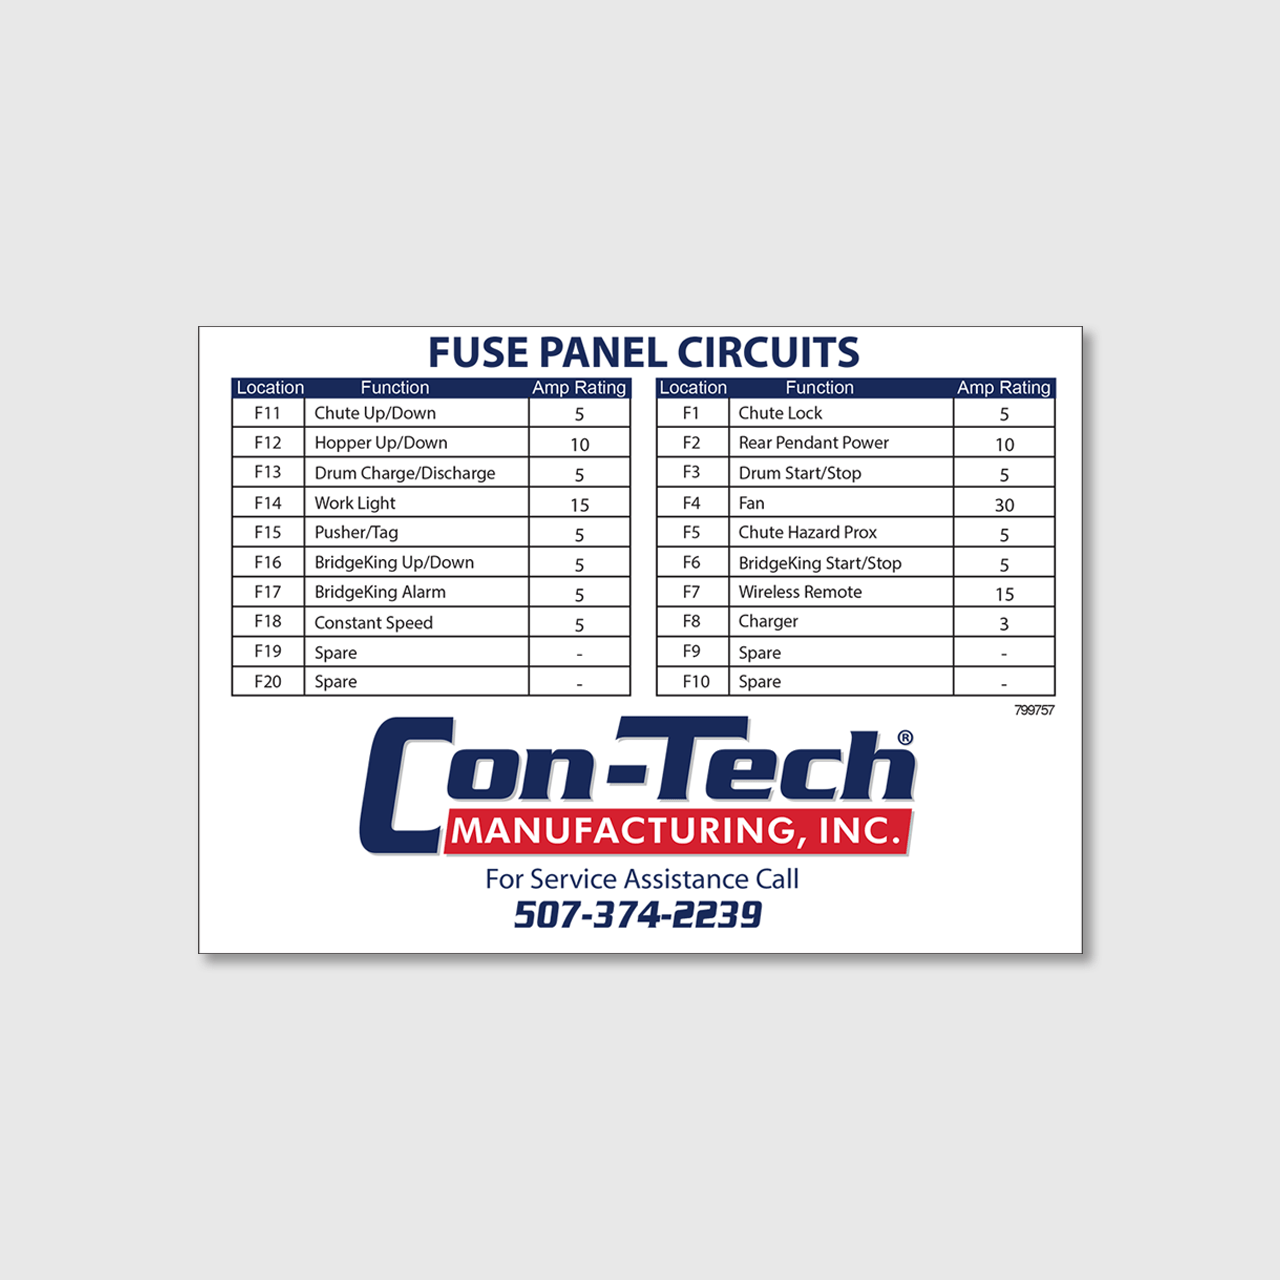 fuse panel circuits decal [ 1280 x 1280 Pixel ]